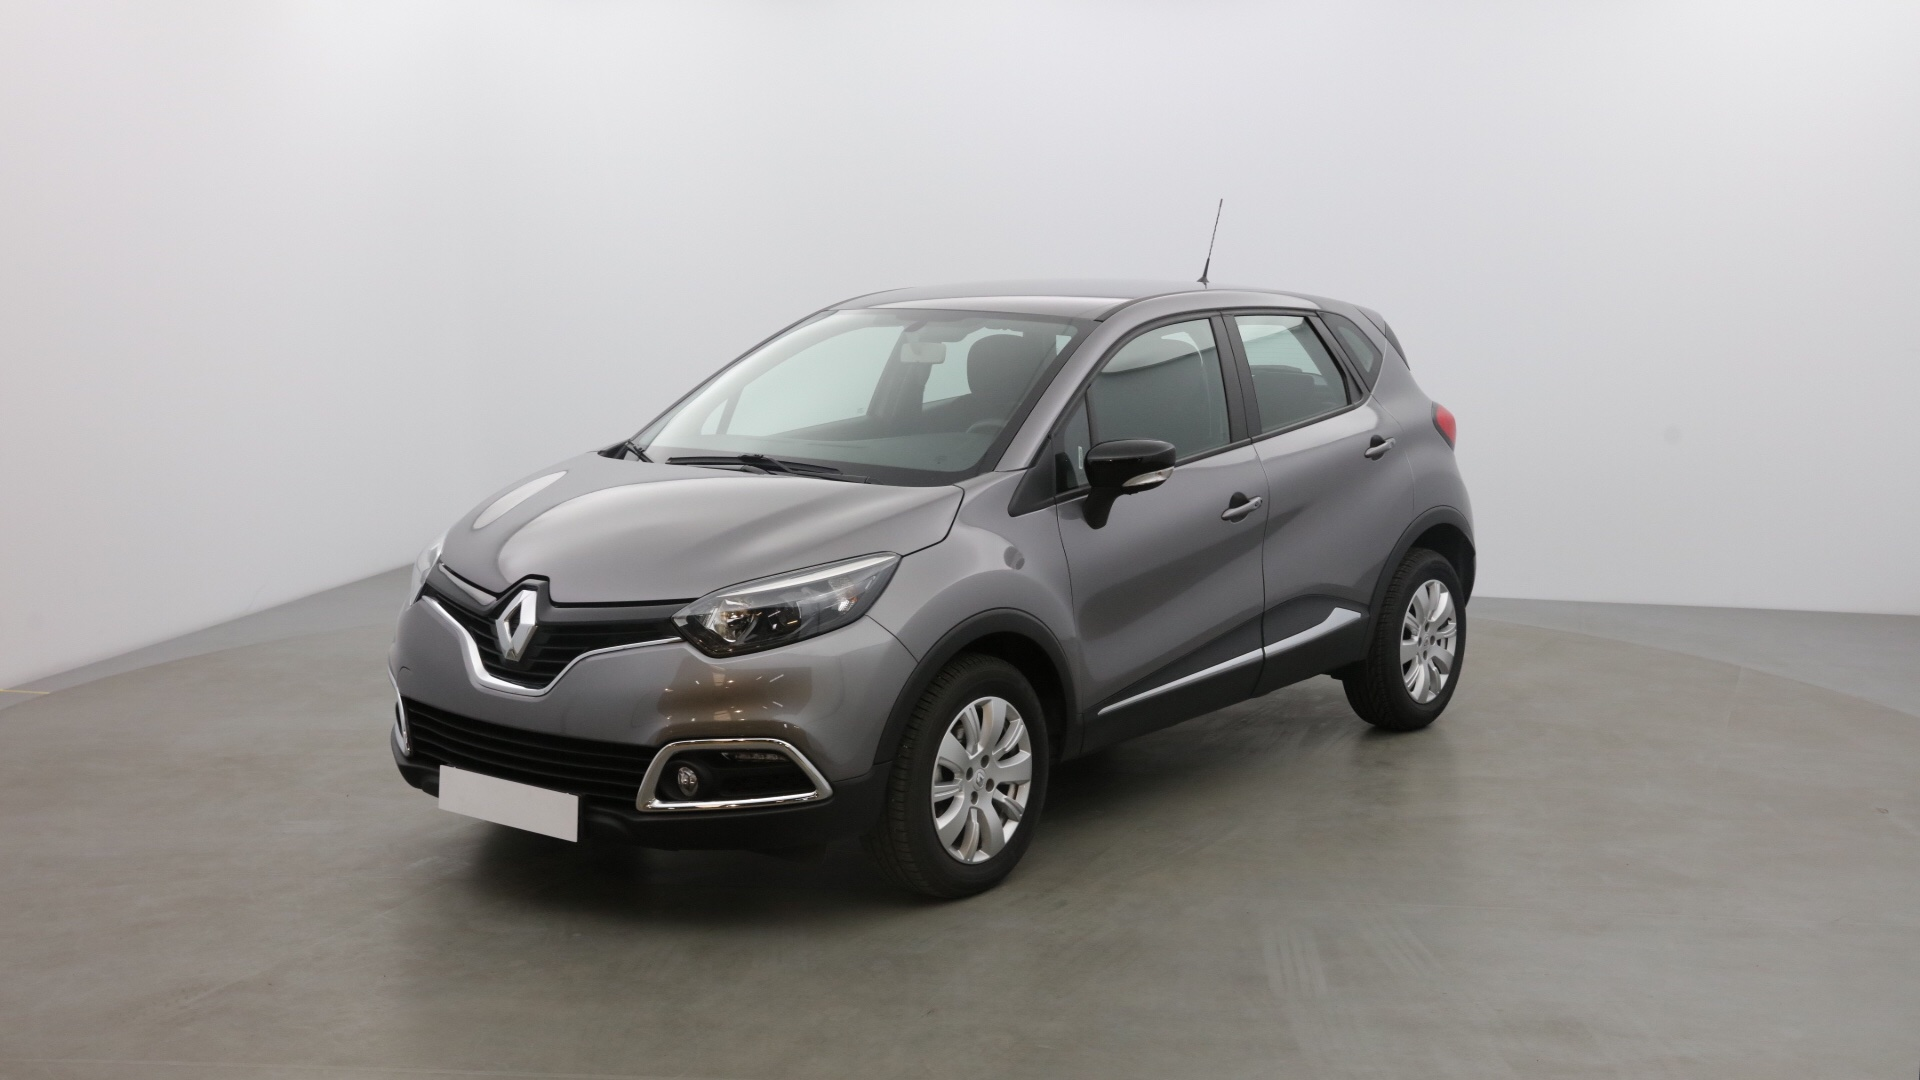 RENAULT CAPTUR 1.5 DCI 90CH STOP&START ENERGY BUSINESS ECO² EURO6 - Photo 1